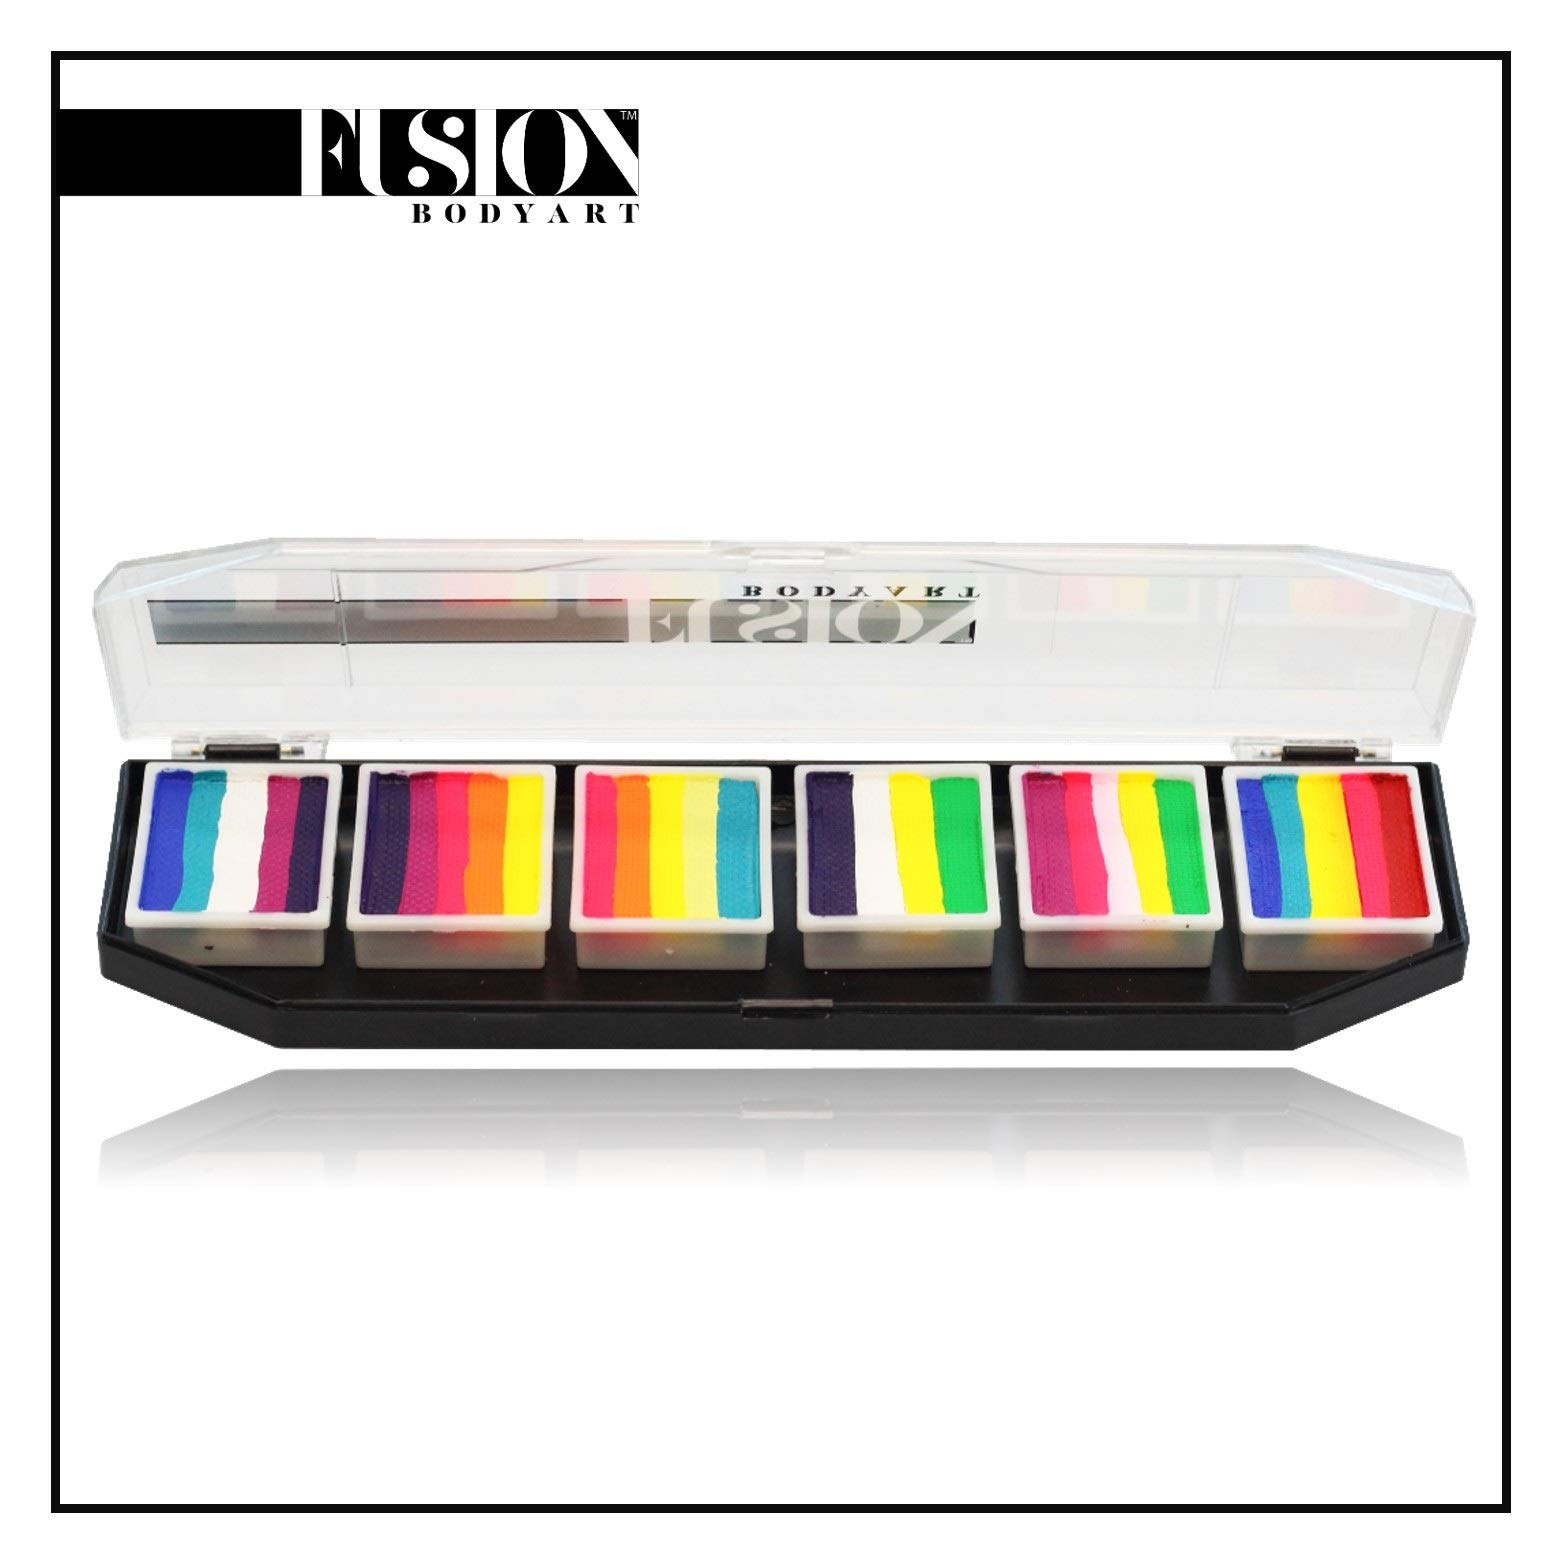 FUSION BODY ART Pro Quality Professional Spectrum Face Painting Palette - Tropical Collection | Hypoallergenic Safe & Non-Toxic | Perfect for Full Face Designs and Cheek Art by FUSION BODY ART